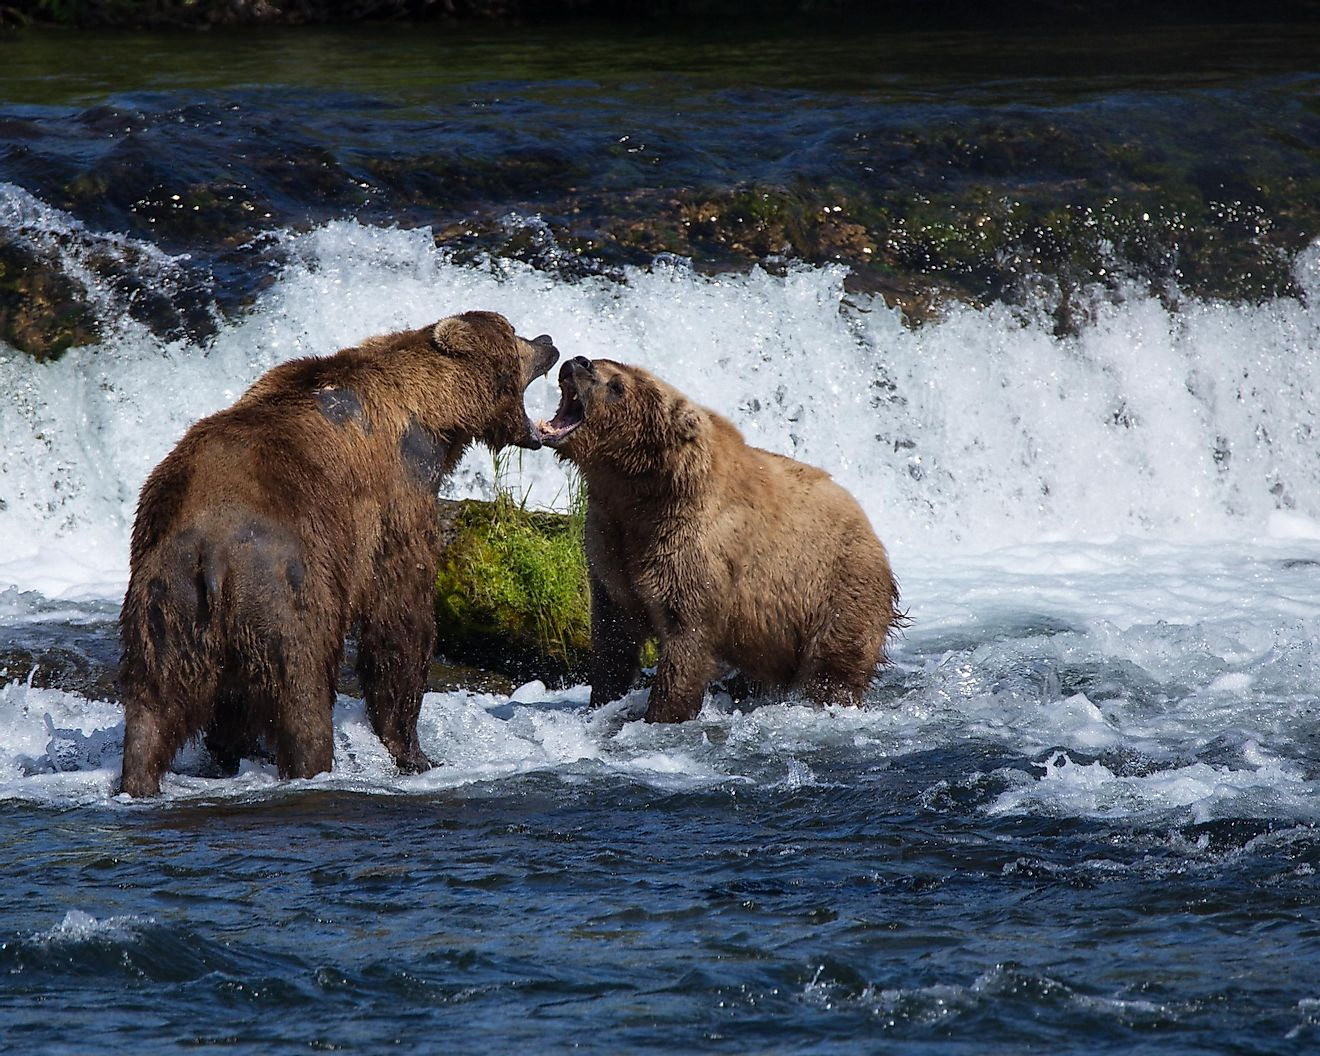 Two brown bears staring each other down in a show of dominance. A fight is likely to result from such a confrontation.